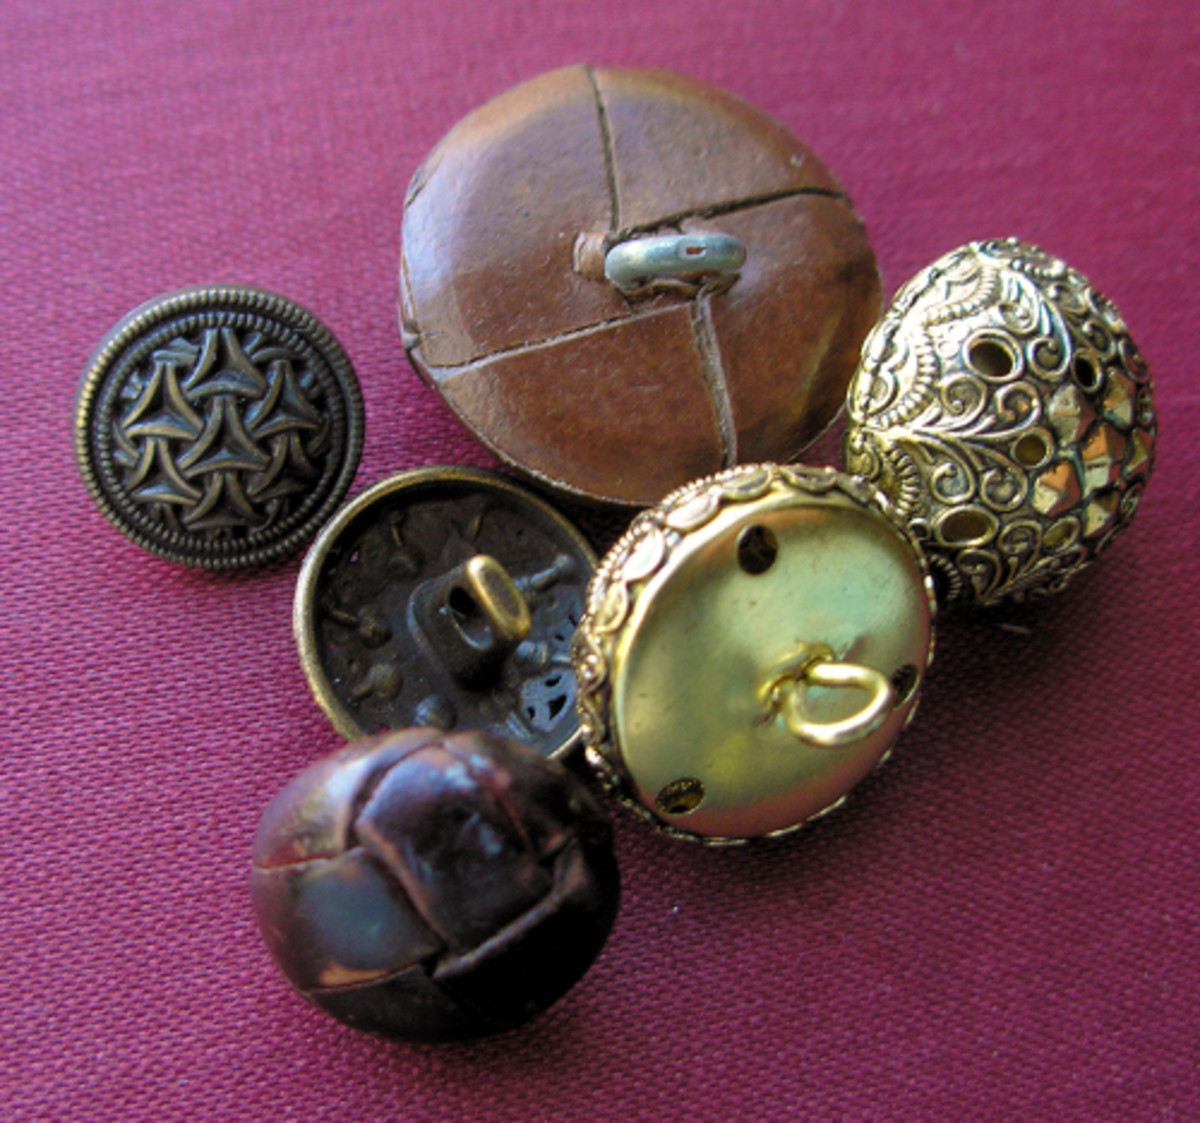 Metal, plastic and leather shank buttons.